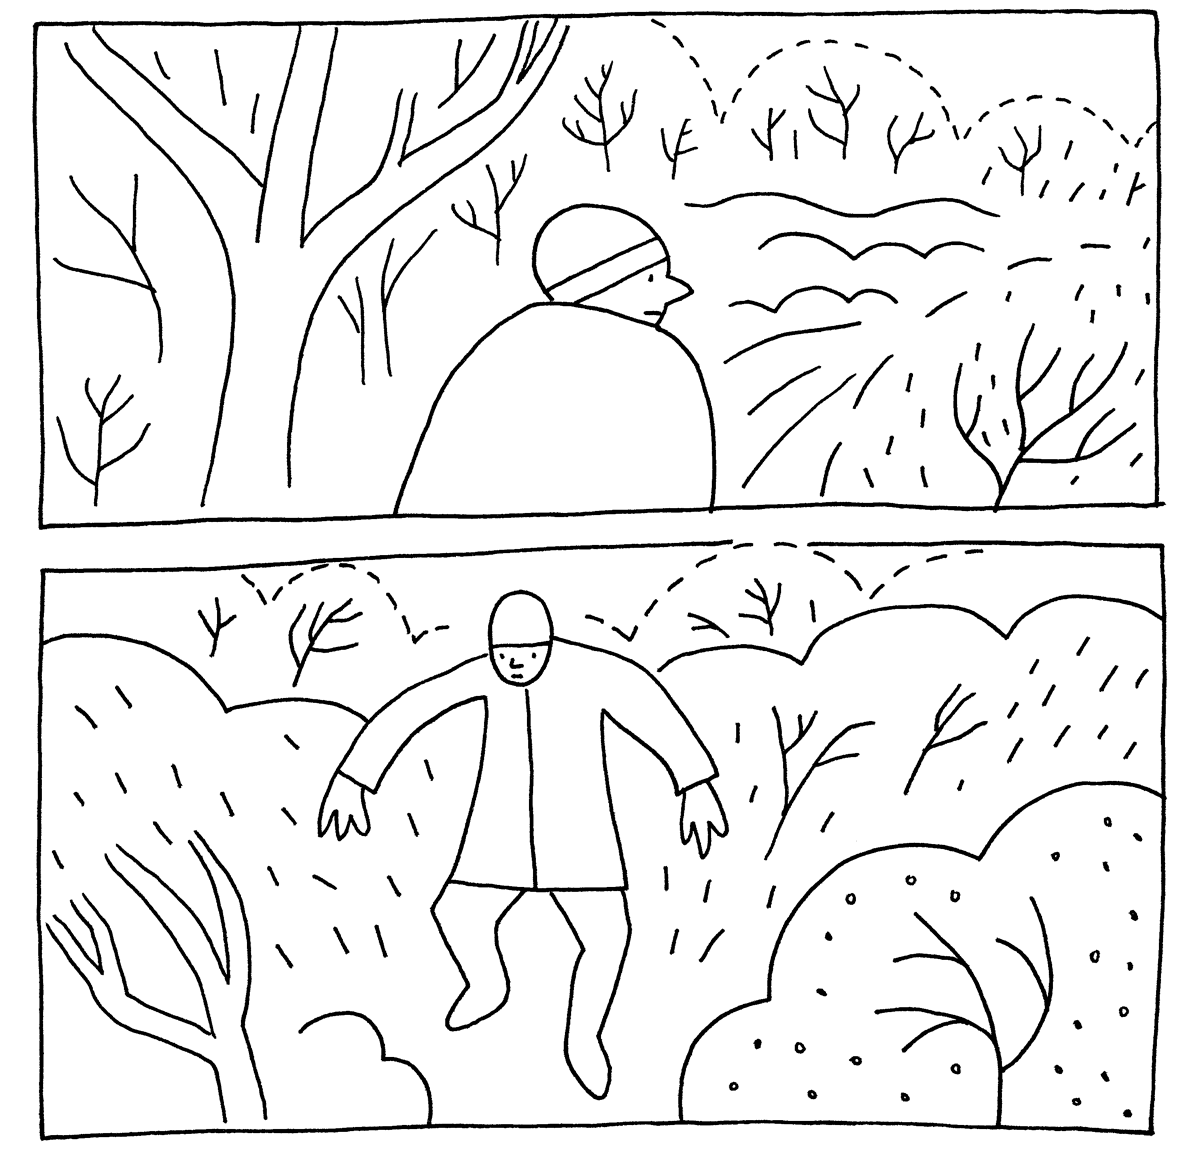 Illustation of a man walking in the snow.